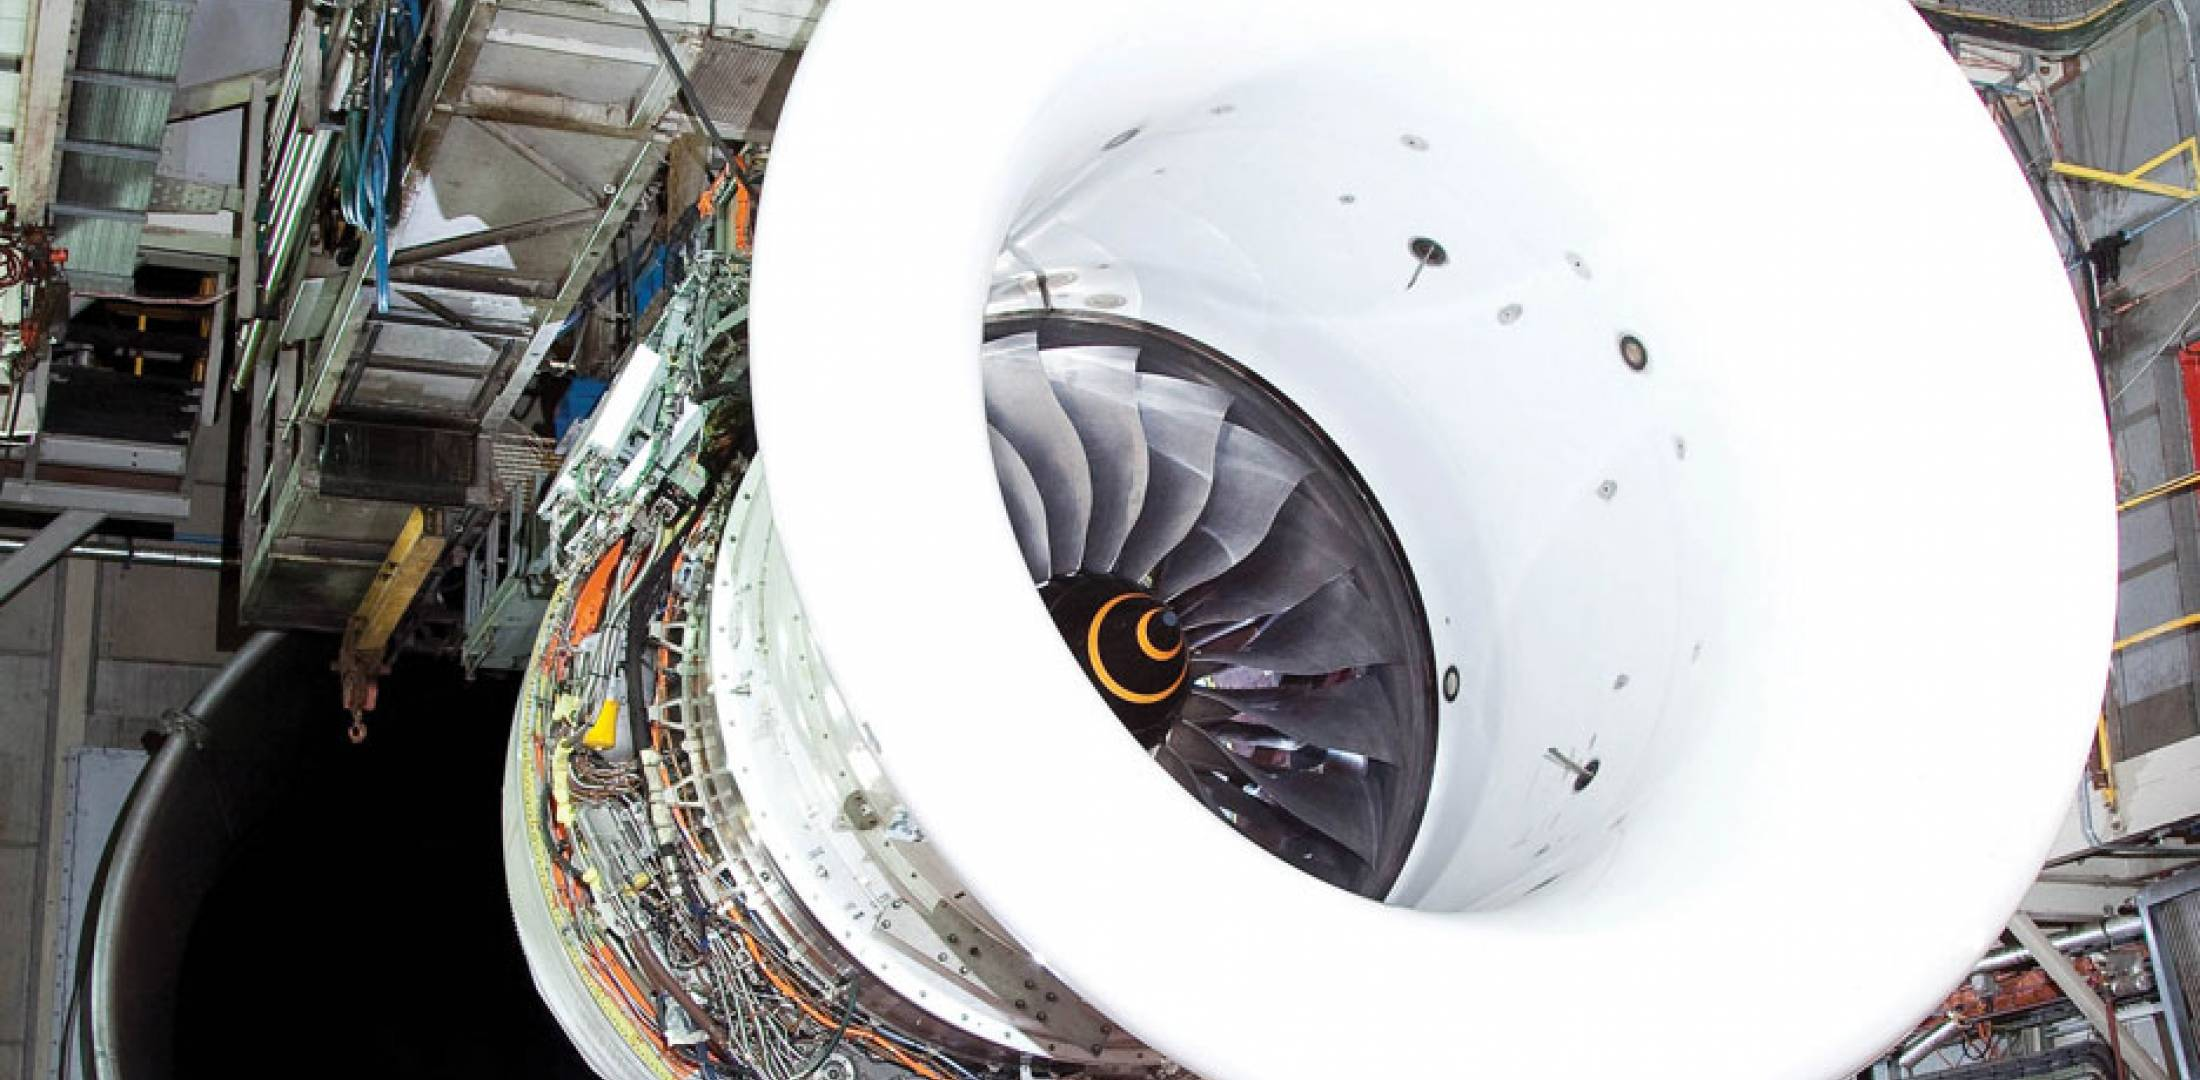 "With the Trent 1000 Package C upgrade, Rolls-Royce aims to offer 76,000 pounds of thrust ""with margin"" to meet Boeing 787-9 power requirements and provide increased performance for the 787-10X."